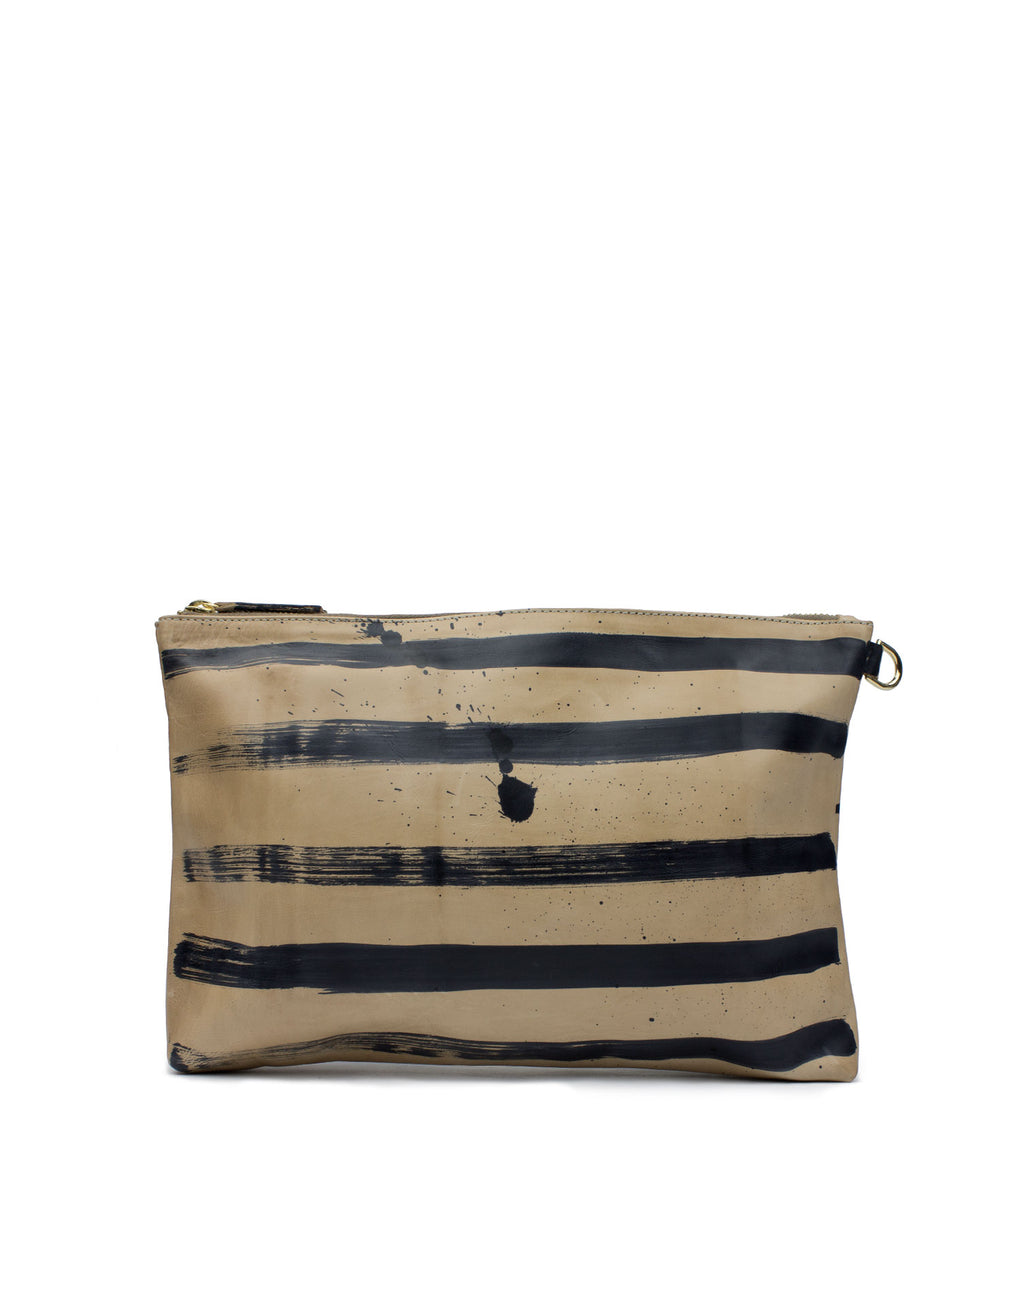 Hand Painted Leather Pouch bag by designer Georgina Goodman. Made in Portugal, Painted in London. Made in Love.